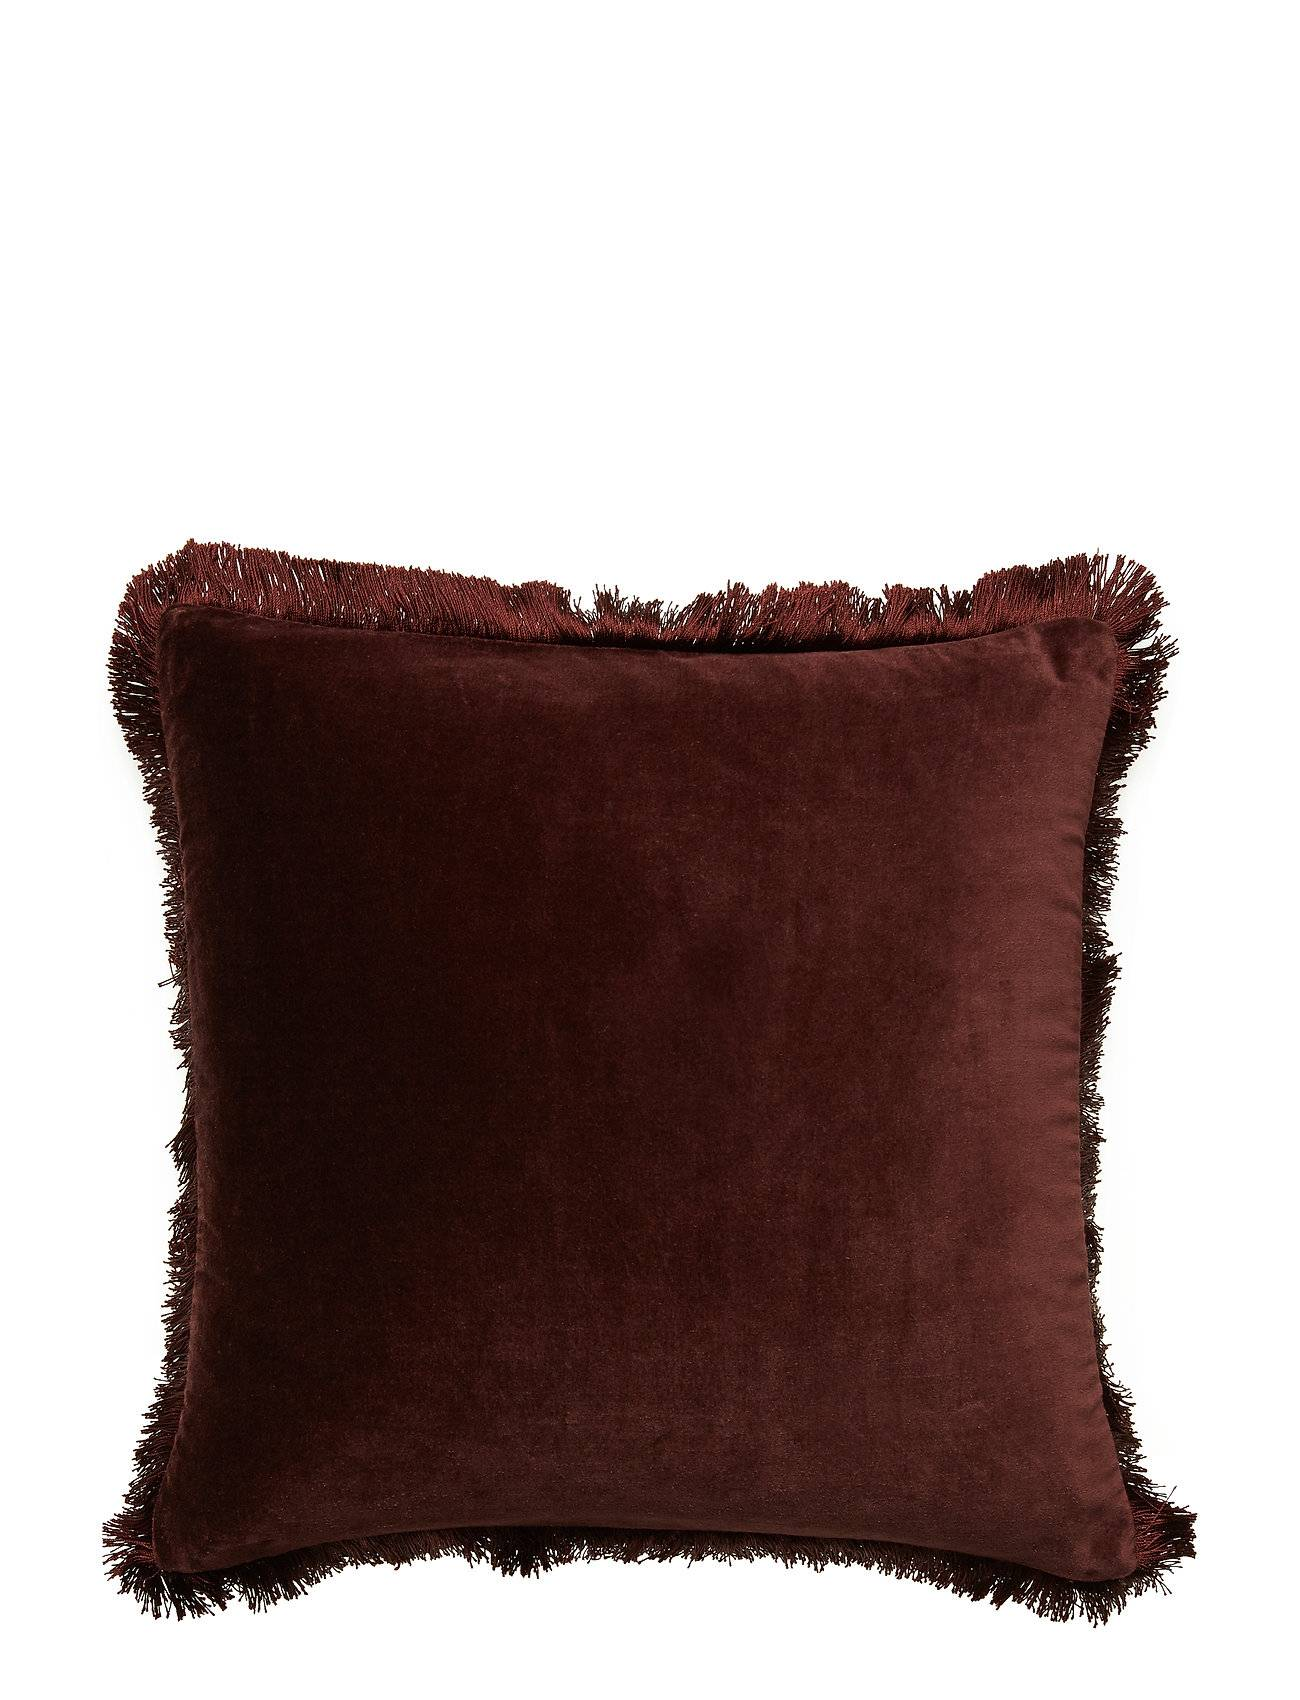 DAY Home Day Classic Velvet Cushion Cover Deep Wine Fringes Pussilakana Punainen DAY Home